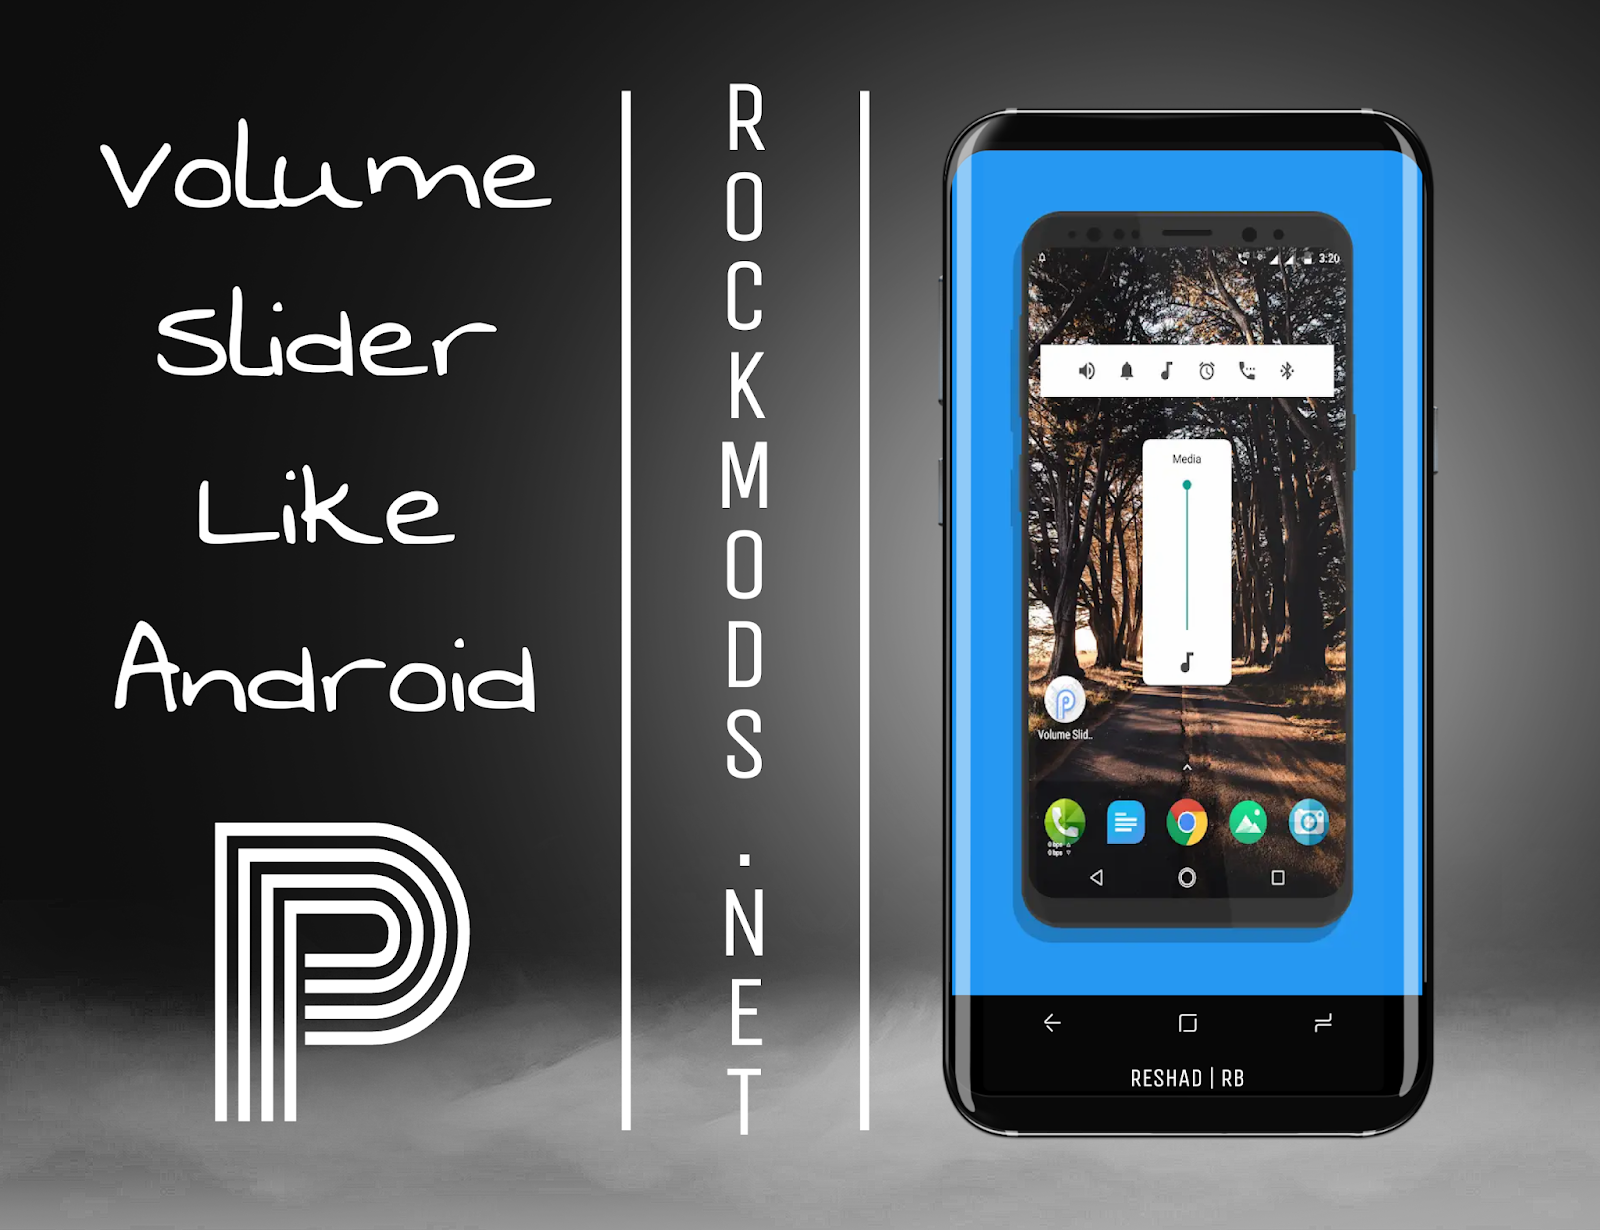 P Volume Slider 3 0 (Mod Pro + Lite) - RB Mods